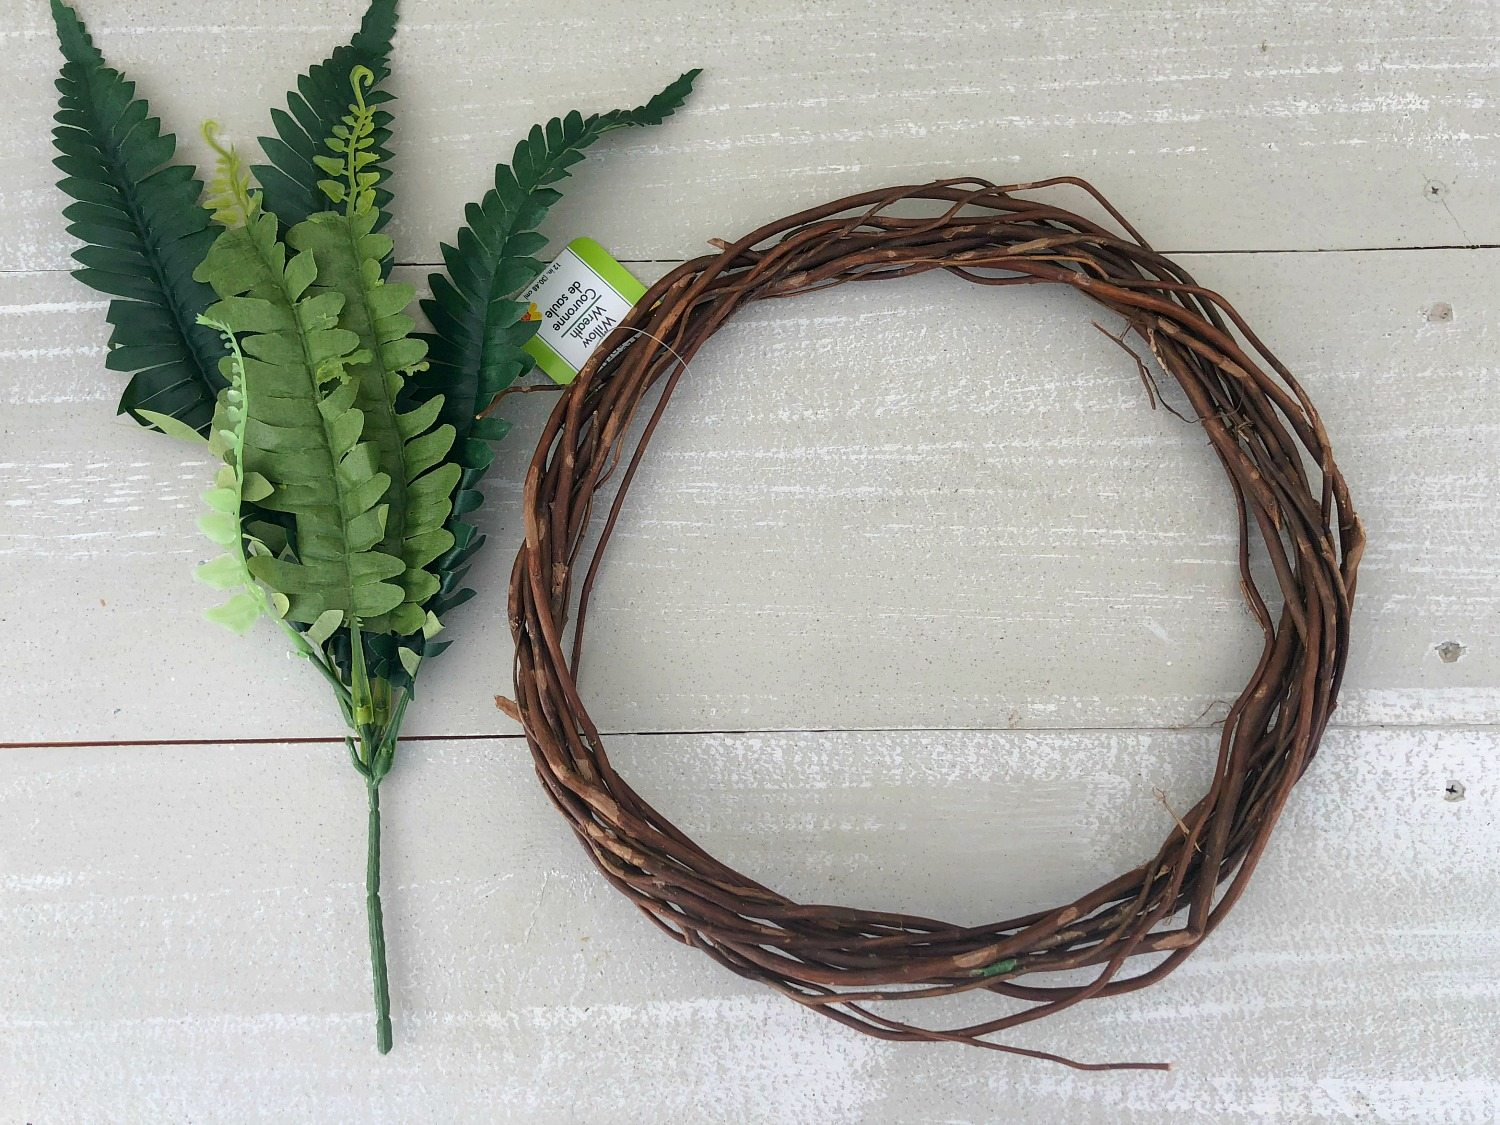 Make this fern wreath